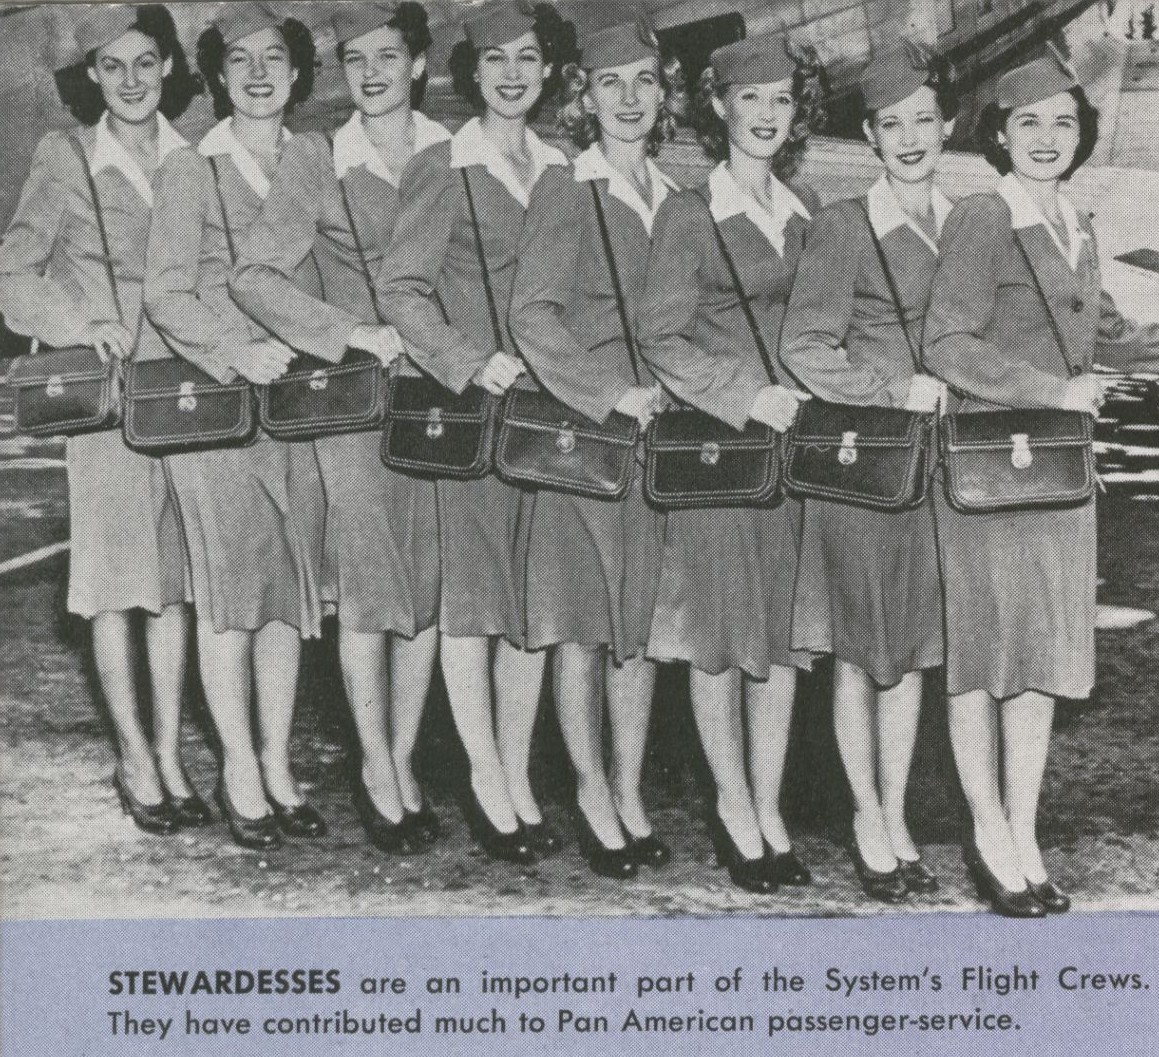 1944 Class of stewardesses